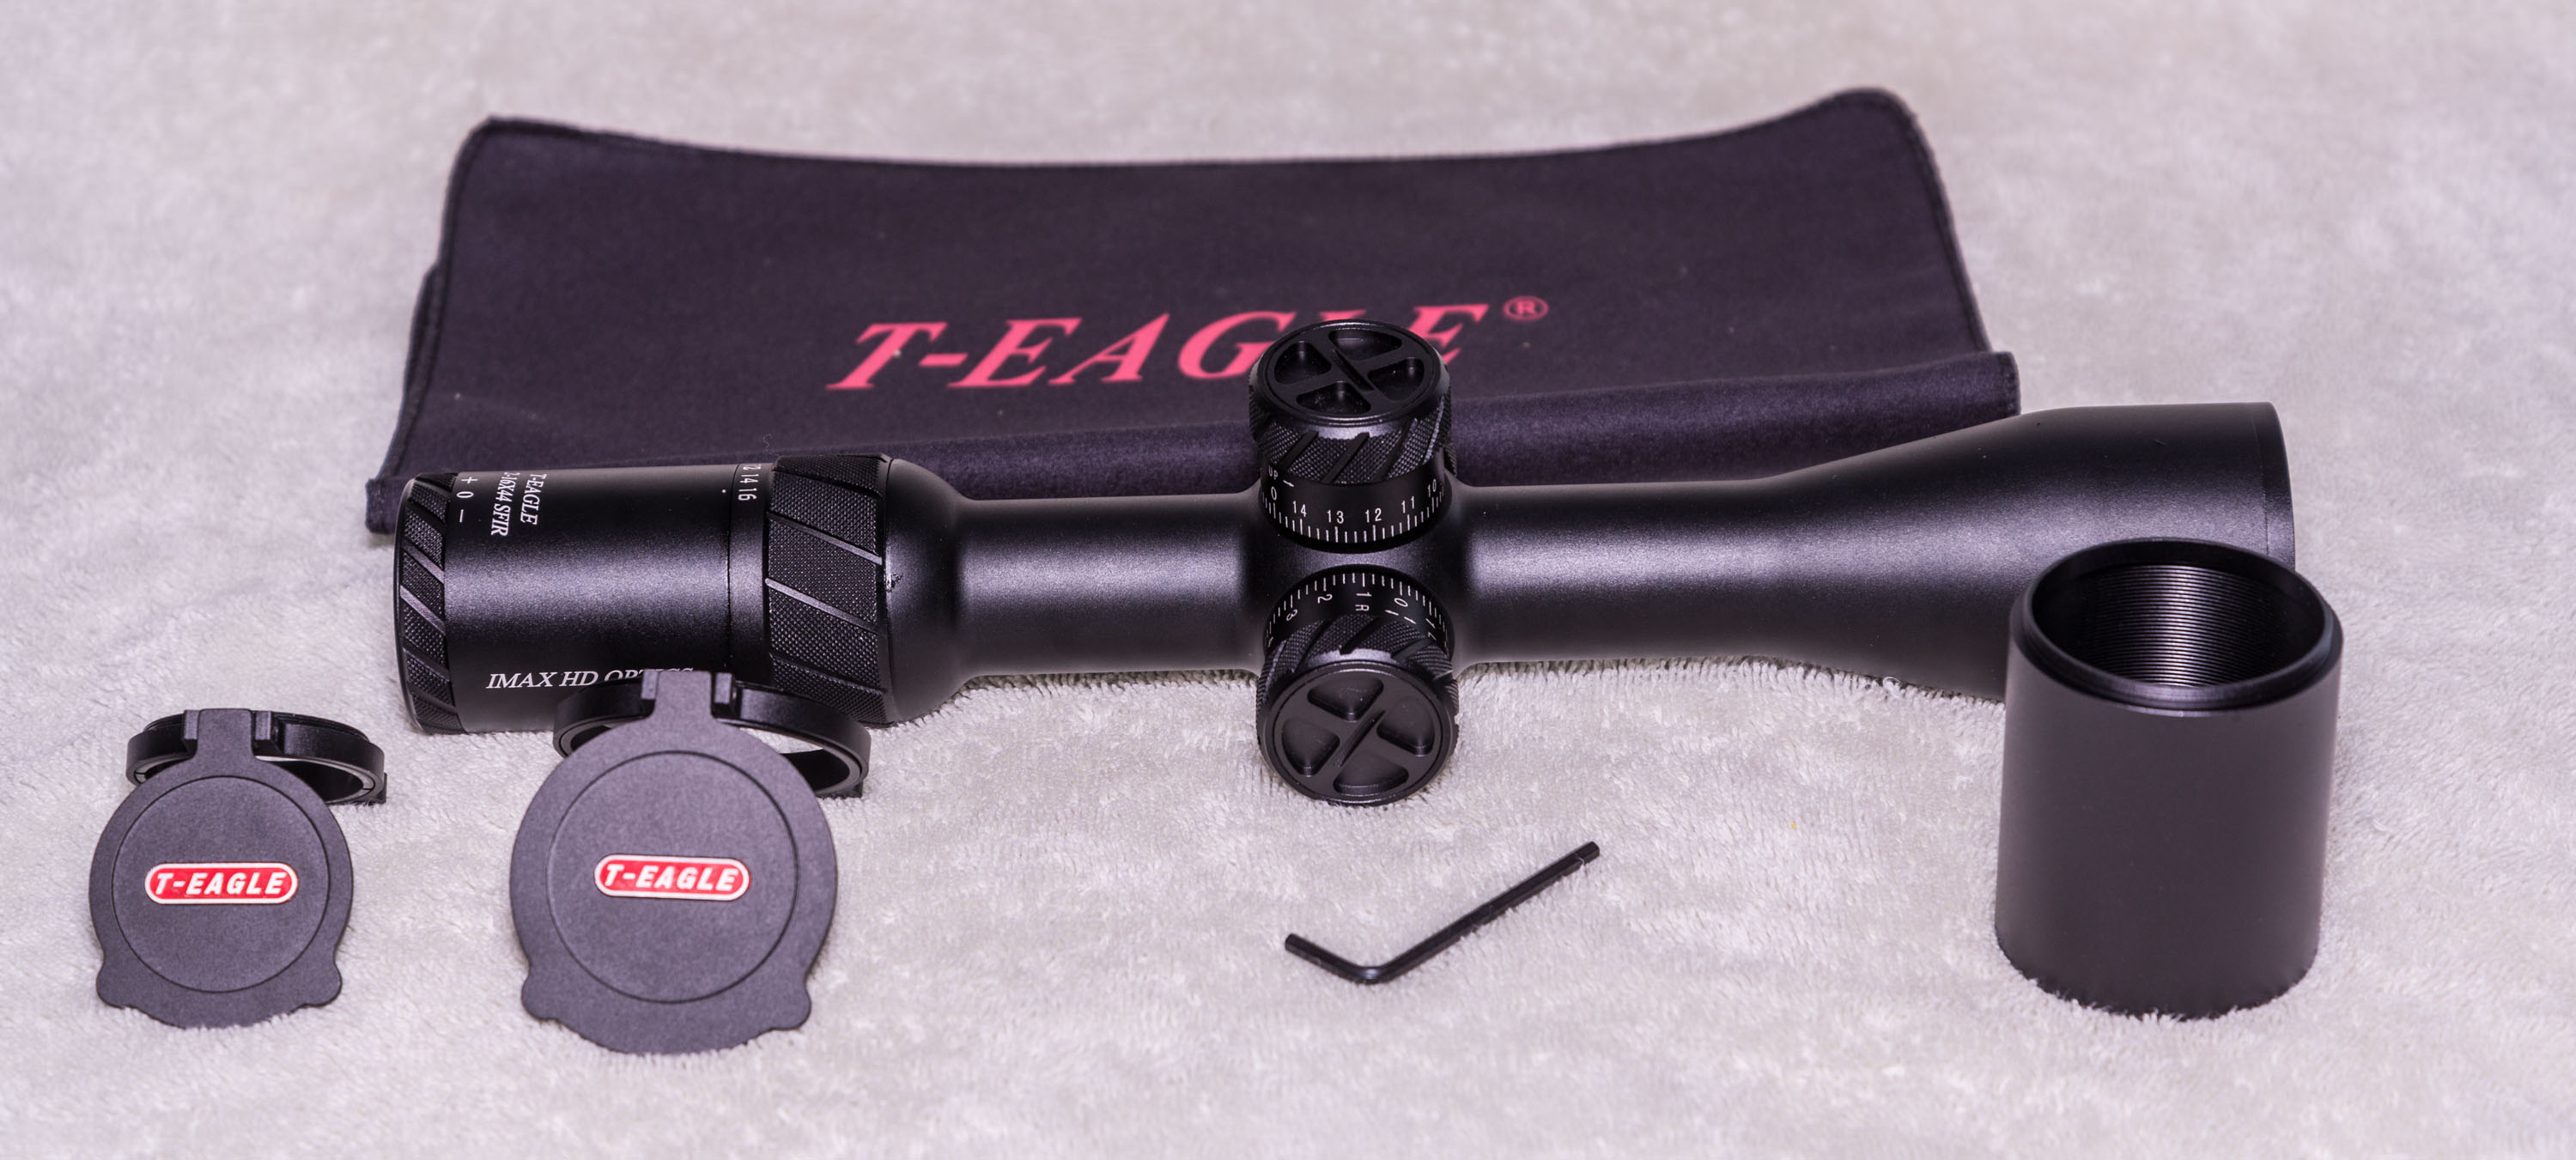 Name:  88648d1527908231-t-eagle-scopes-now-available-pass-around-dsc_8779.jpg Views: 620 Size:  450.2 KB